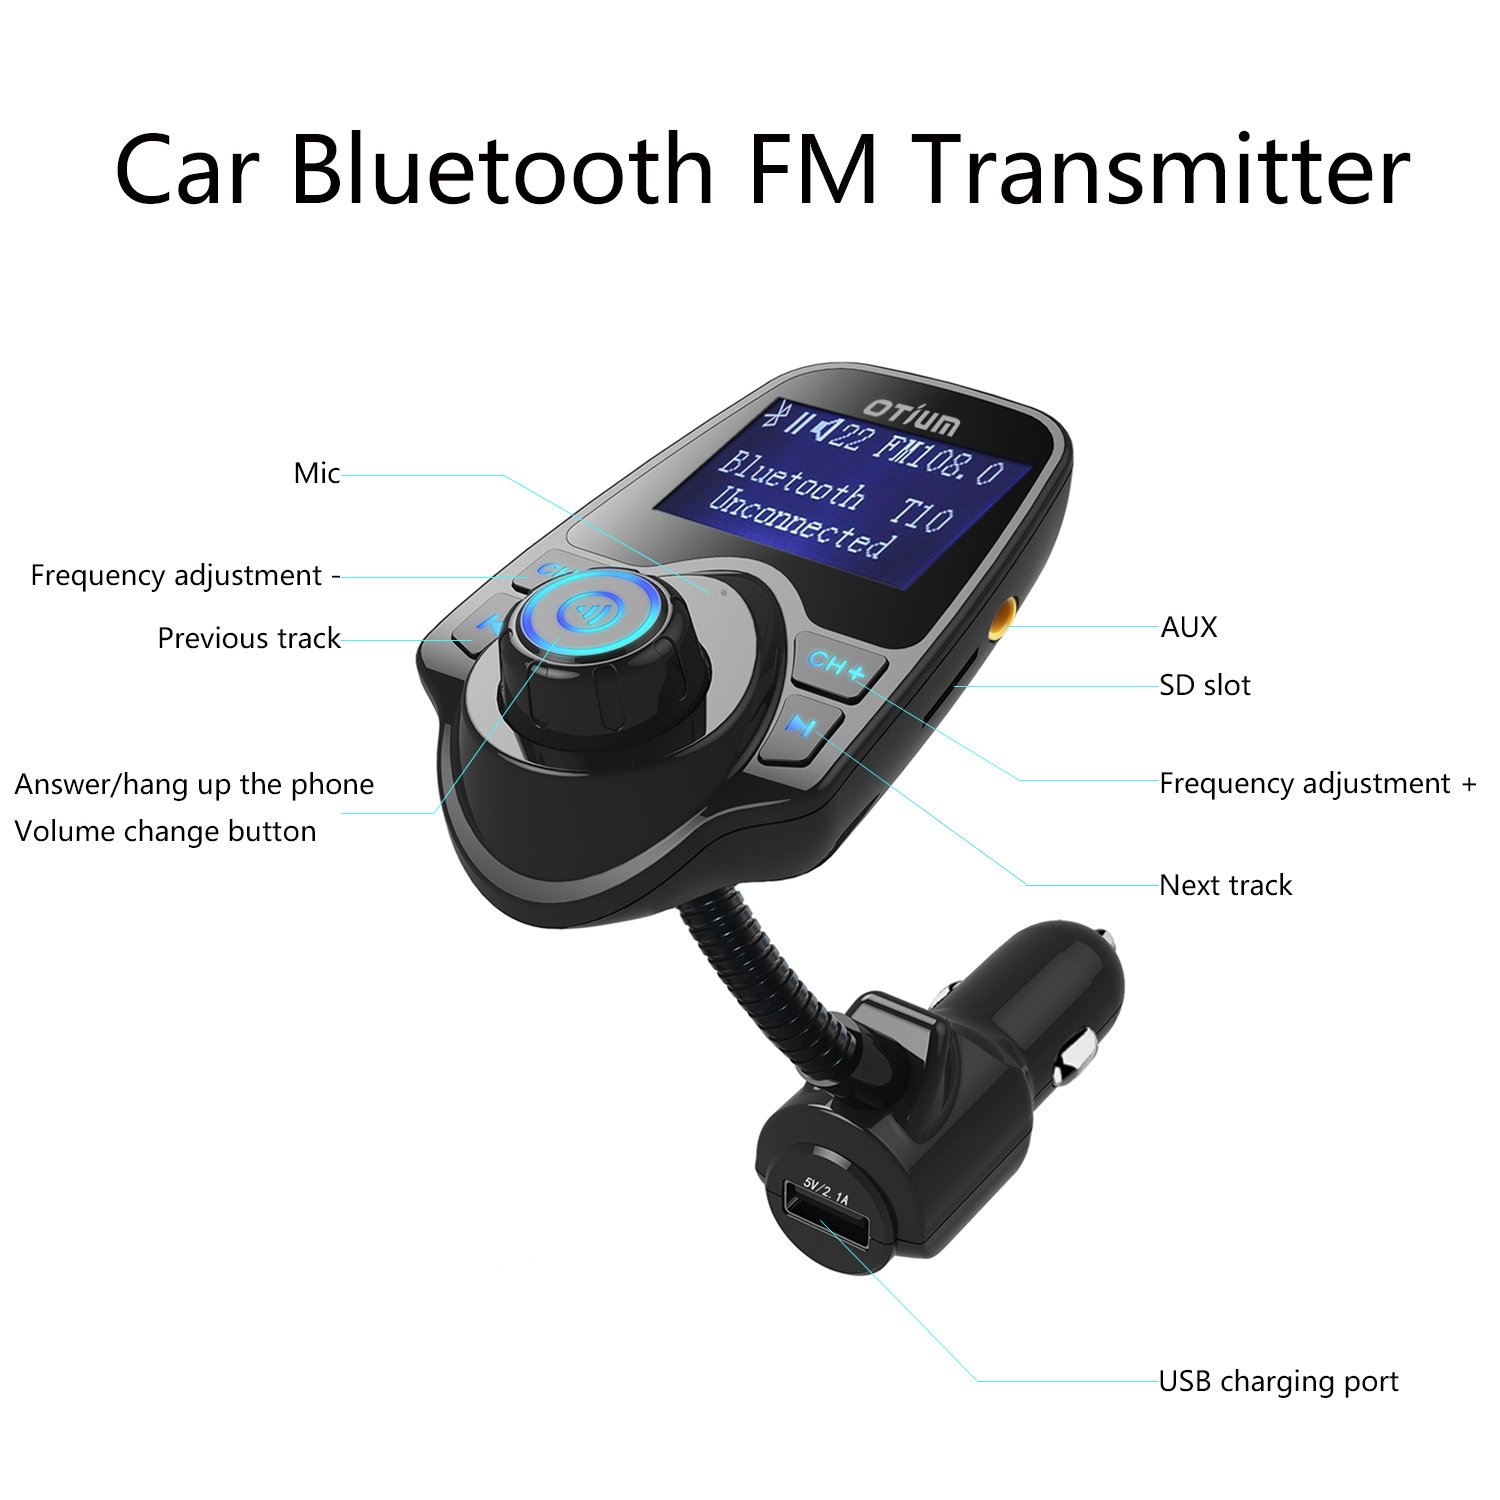 Fm Transmitter Otium Bluetooth Wireless Radio Adapter Tracking Schematics Audio Receiver Stereo Music Tuner Modulator Car Kit With Usb Charger Hands Free Calling